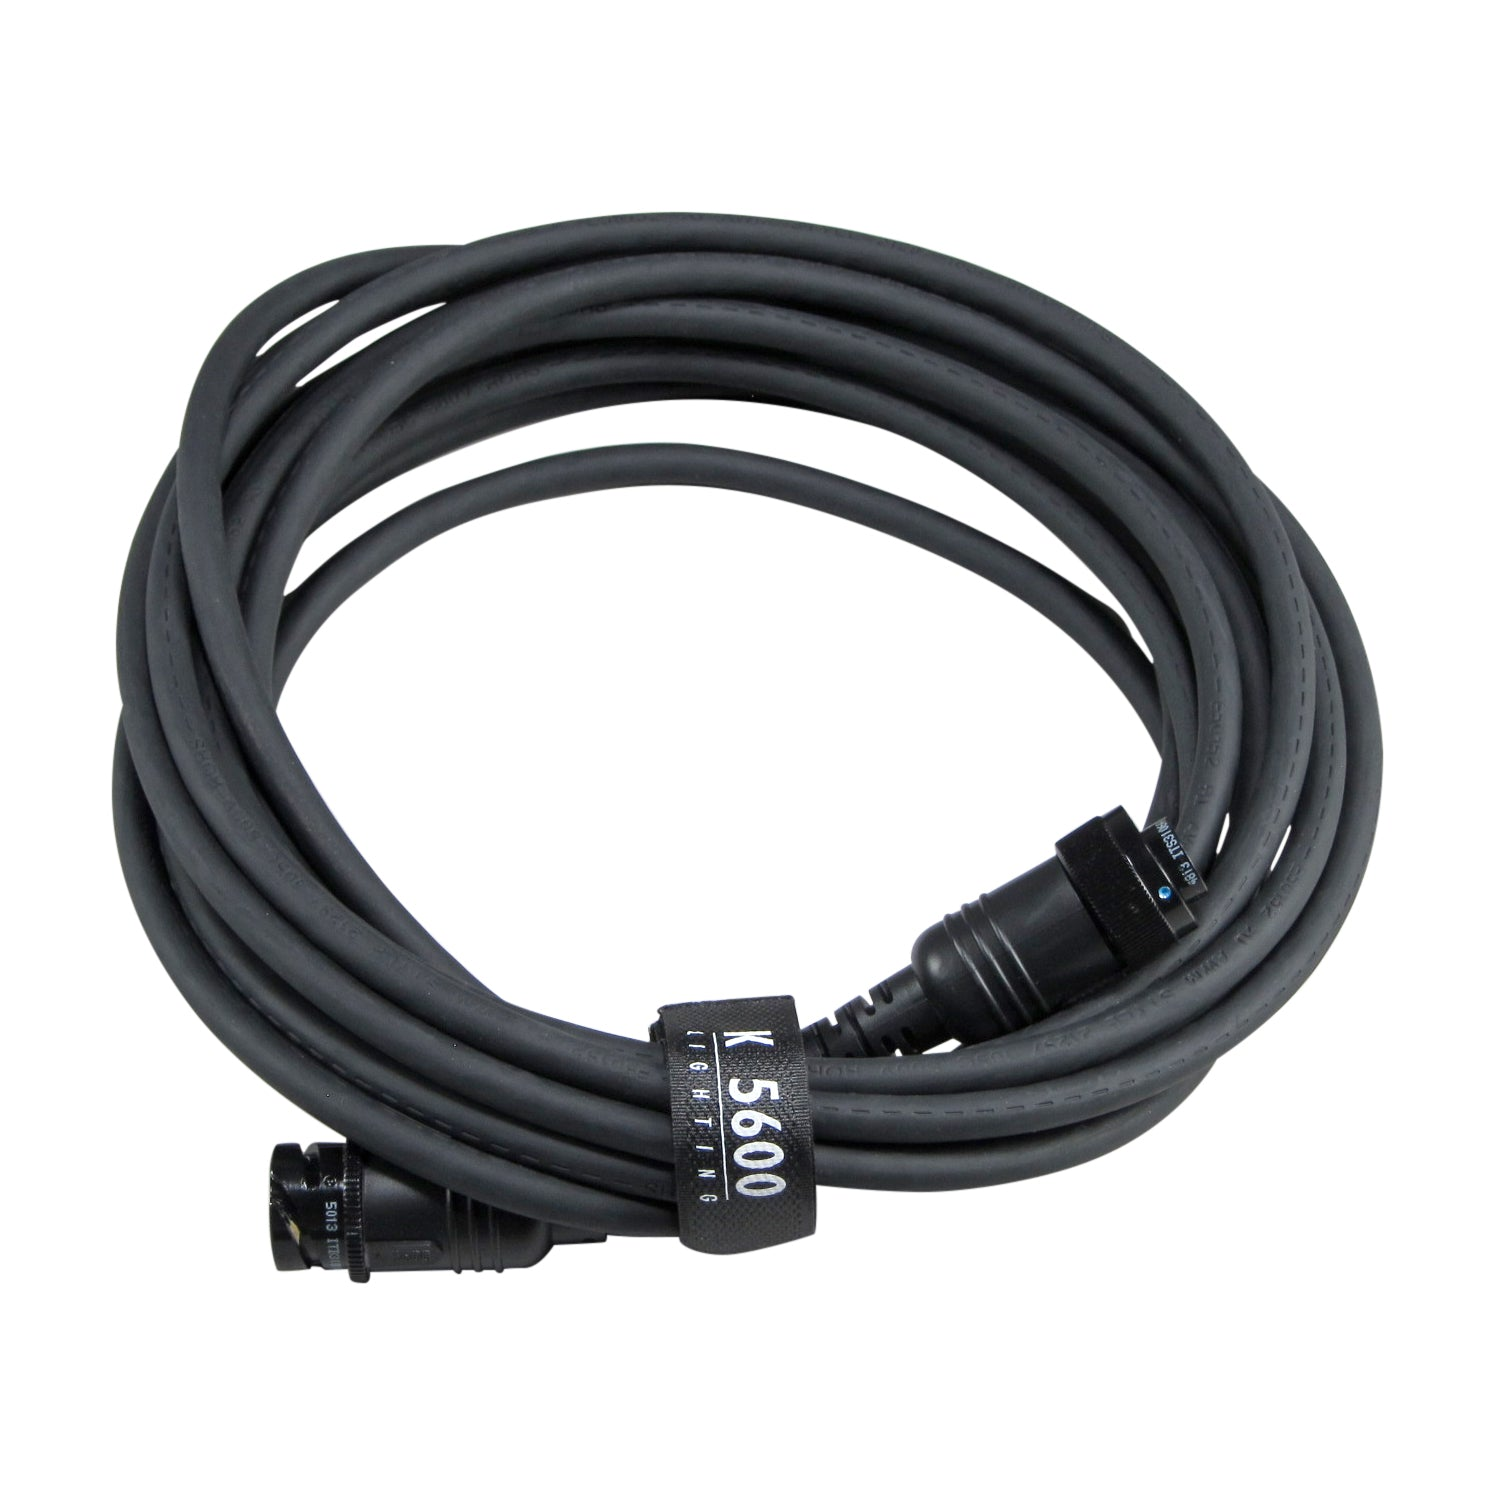 25' Extension Cable - 200/300/400/800